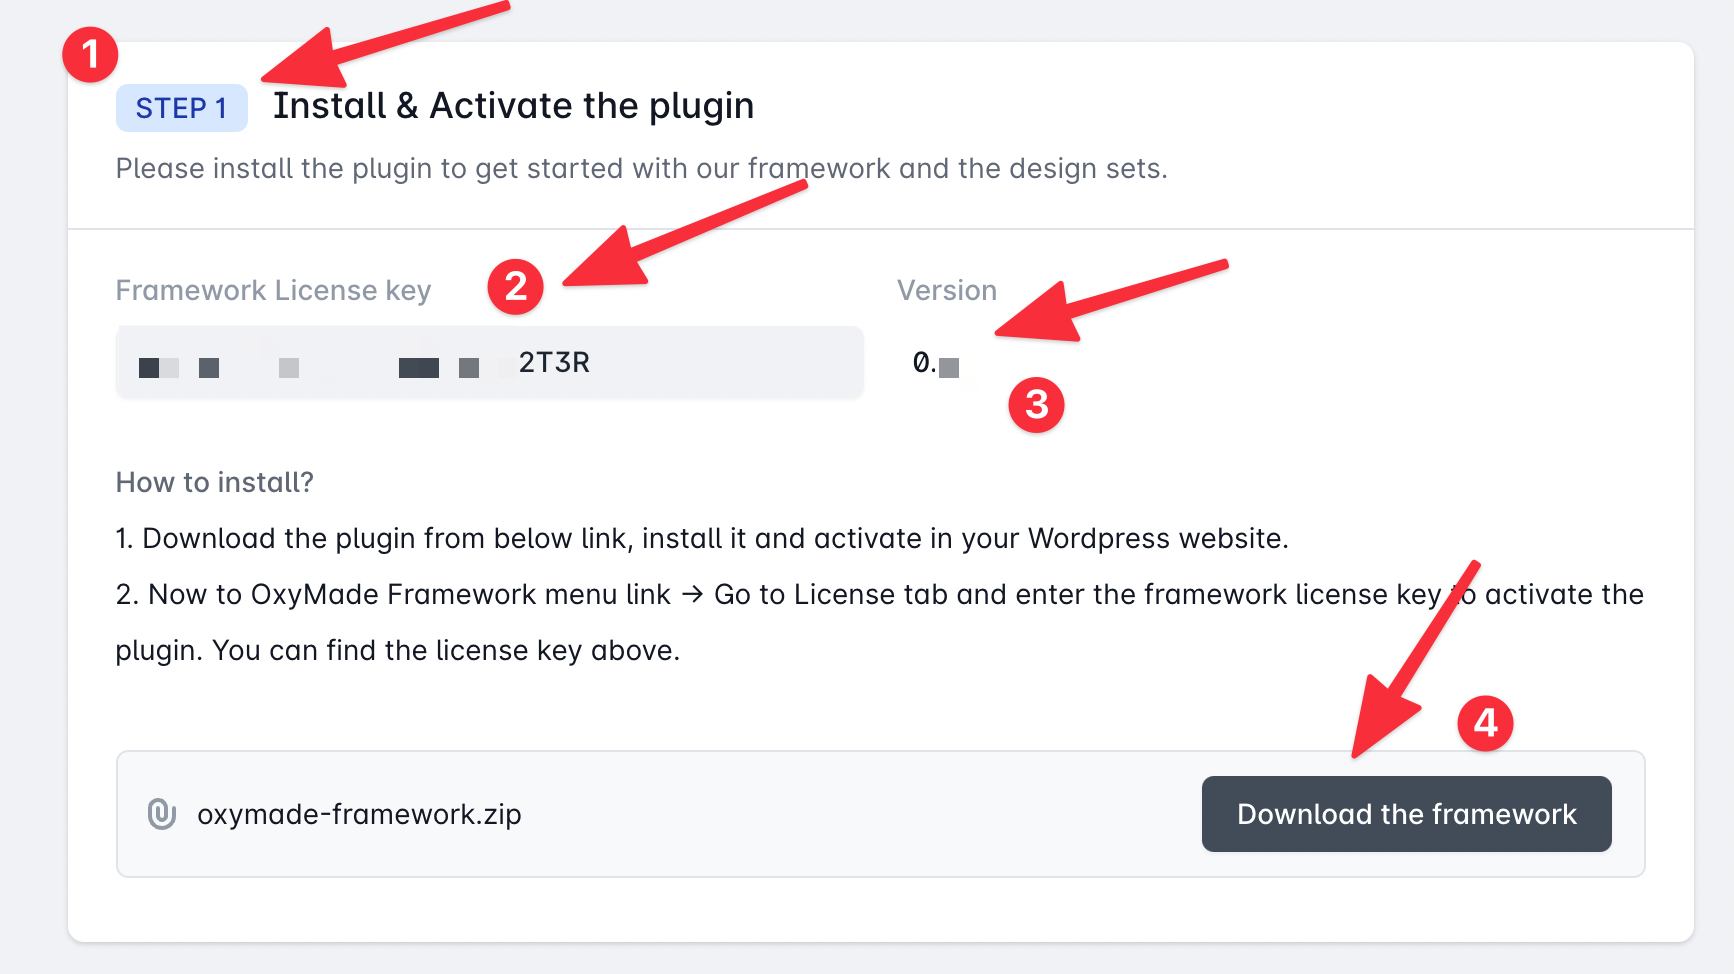 Finding details about the framework plugin